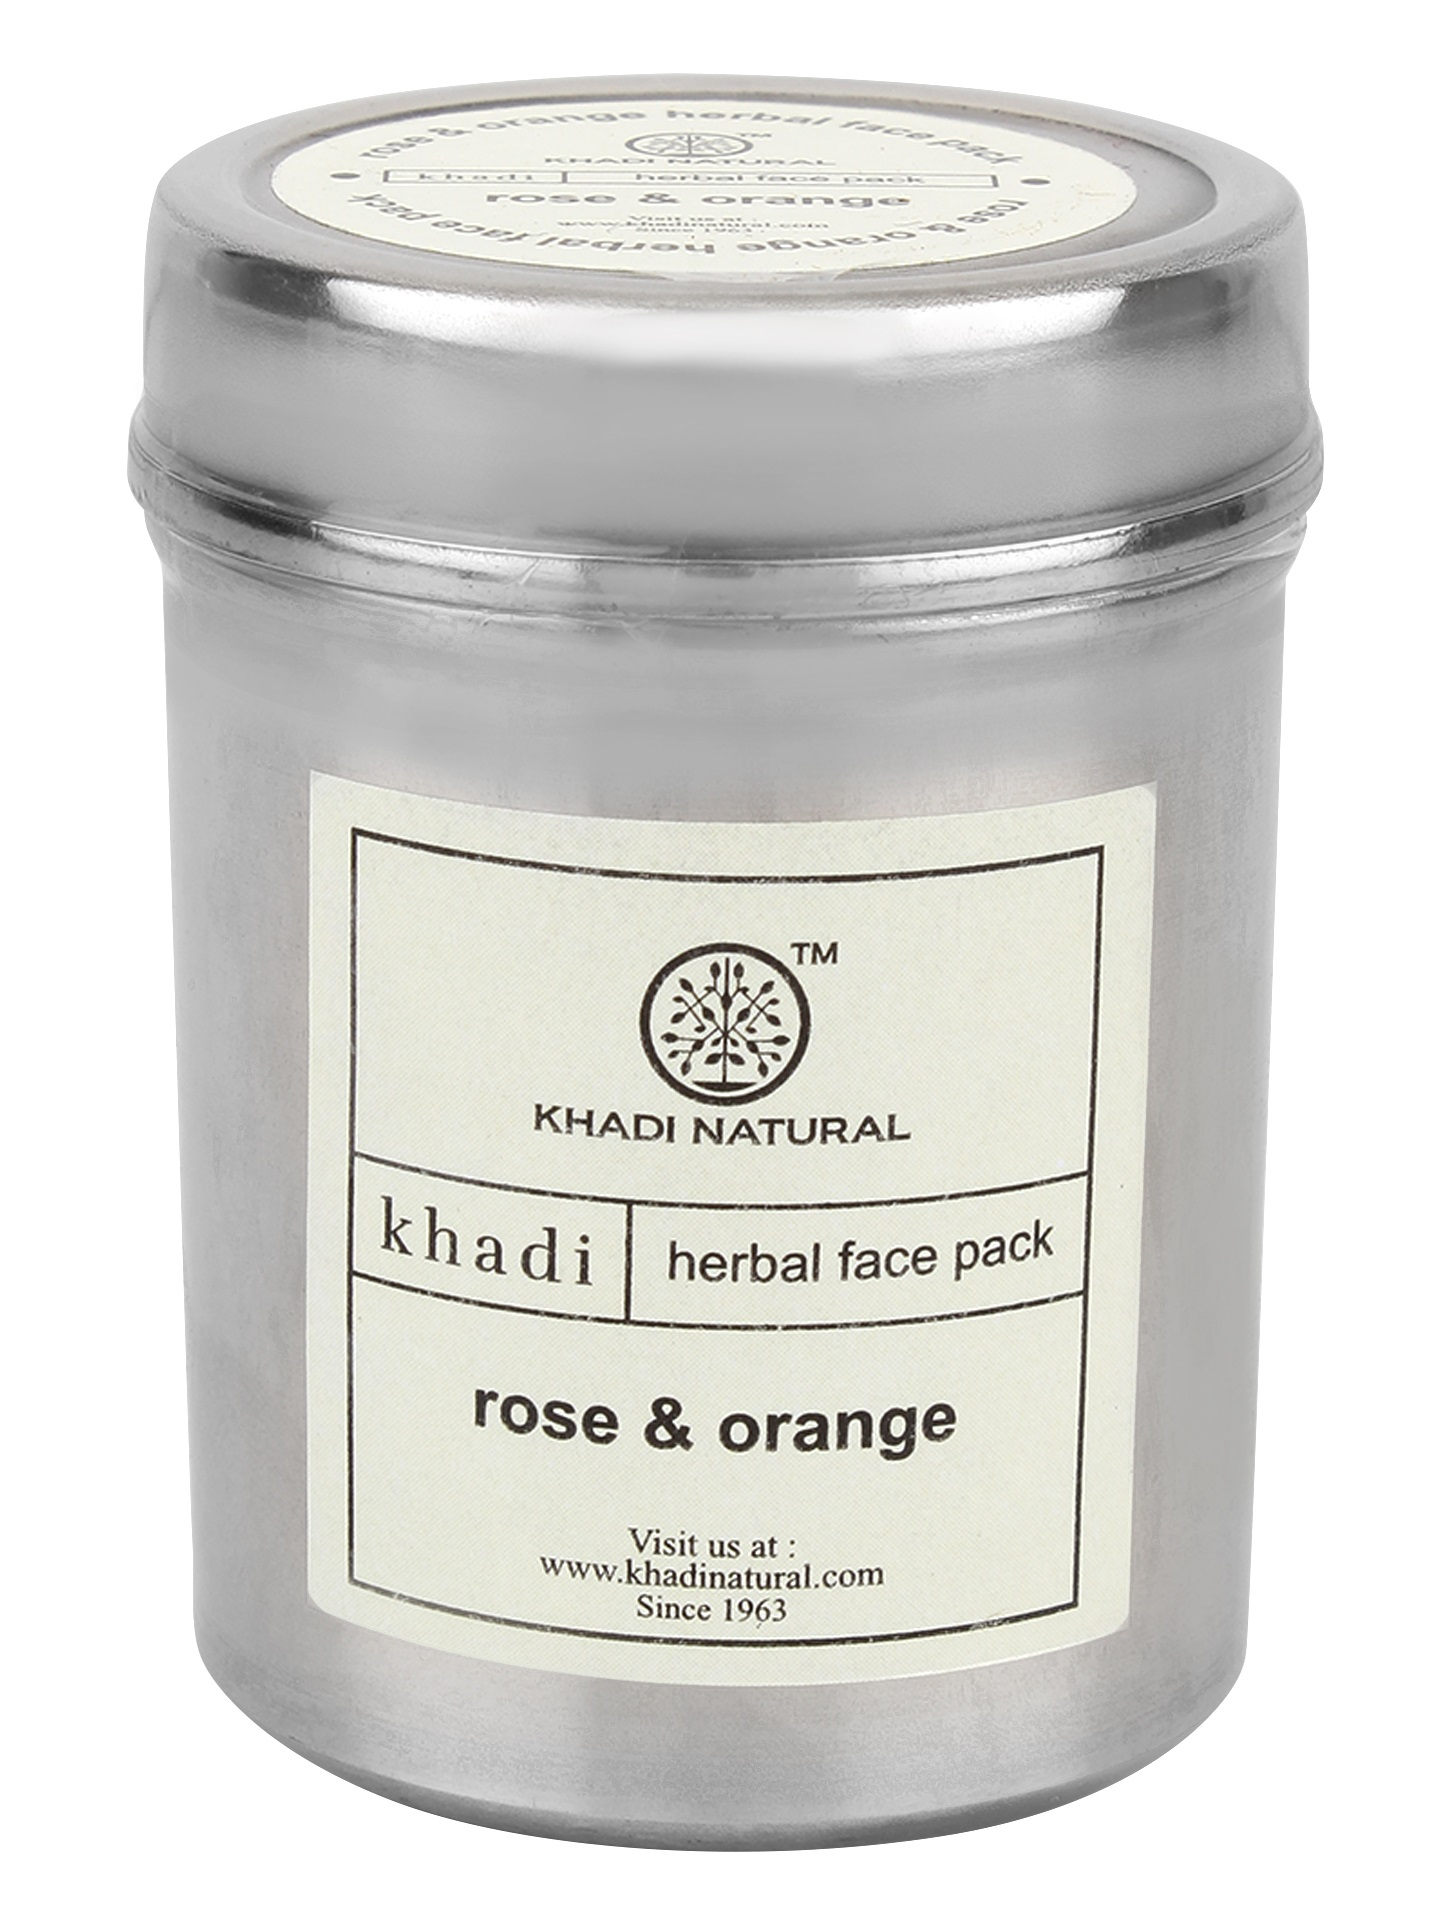 Khadi Natural Rose & Orange Herbal Face Pack  available at Nykaa for Rs.90